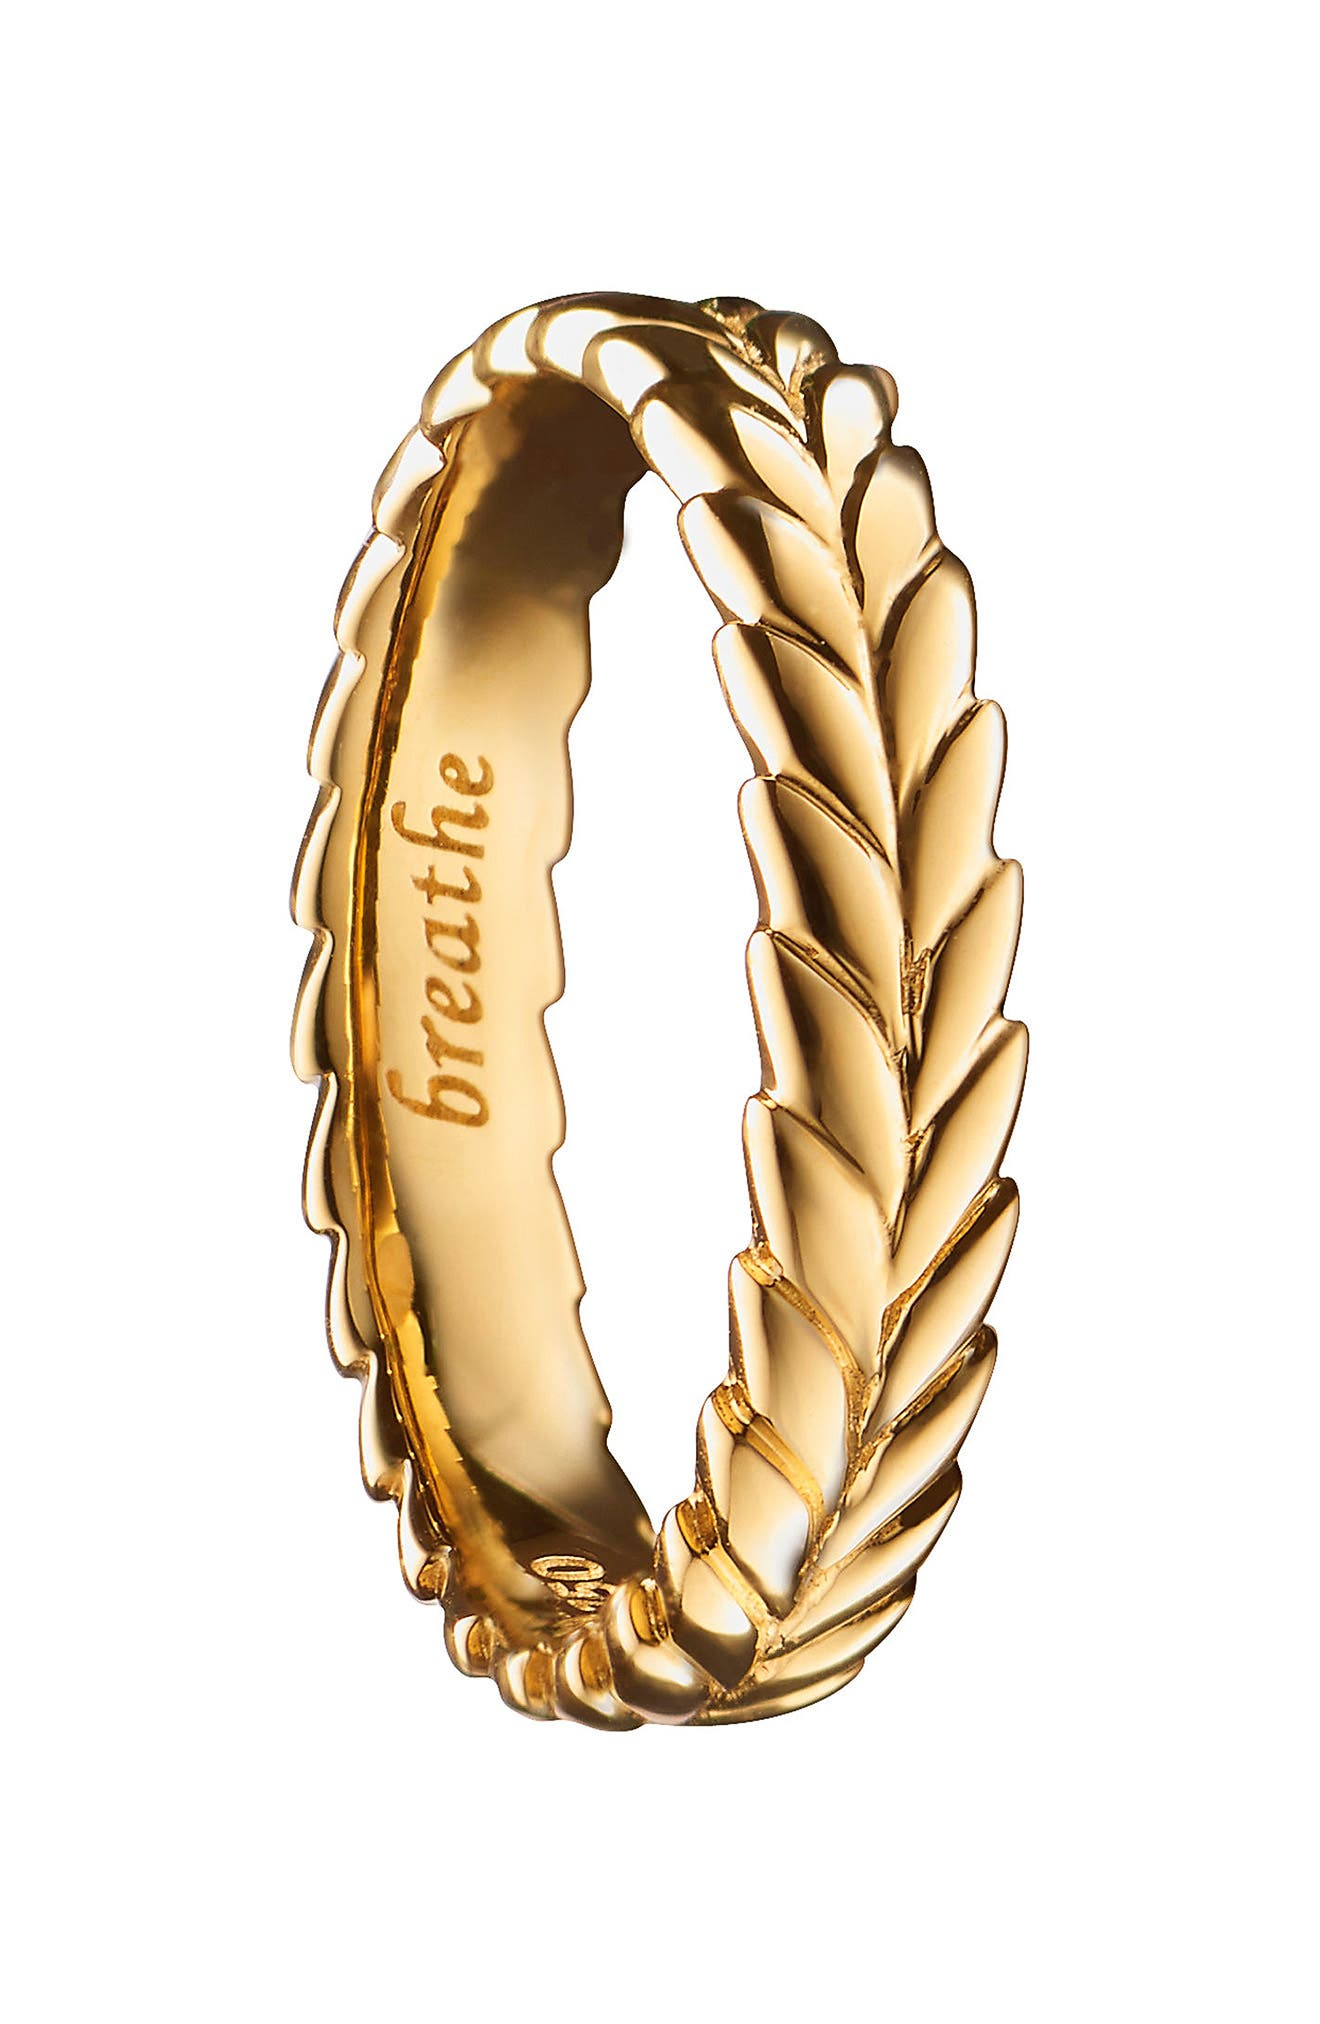 Breathe 18K Gold Poesy Ring Charm,                         Main,                         color, 18K Yellow Gold